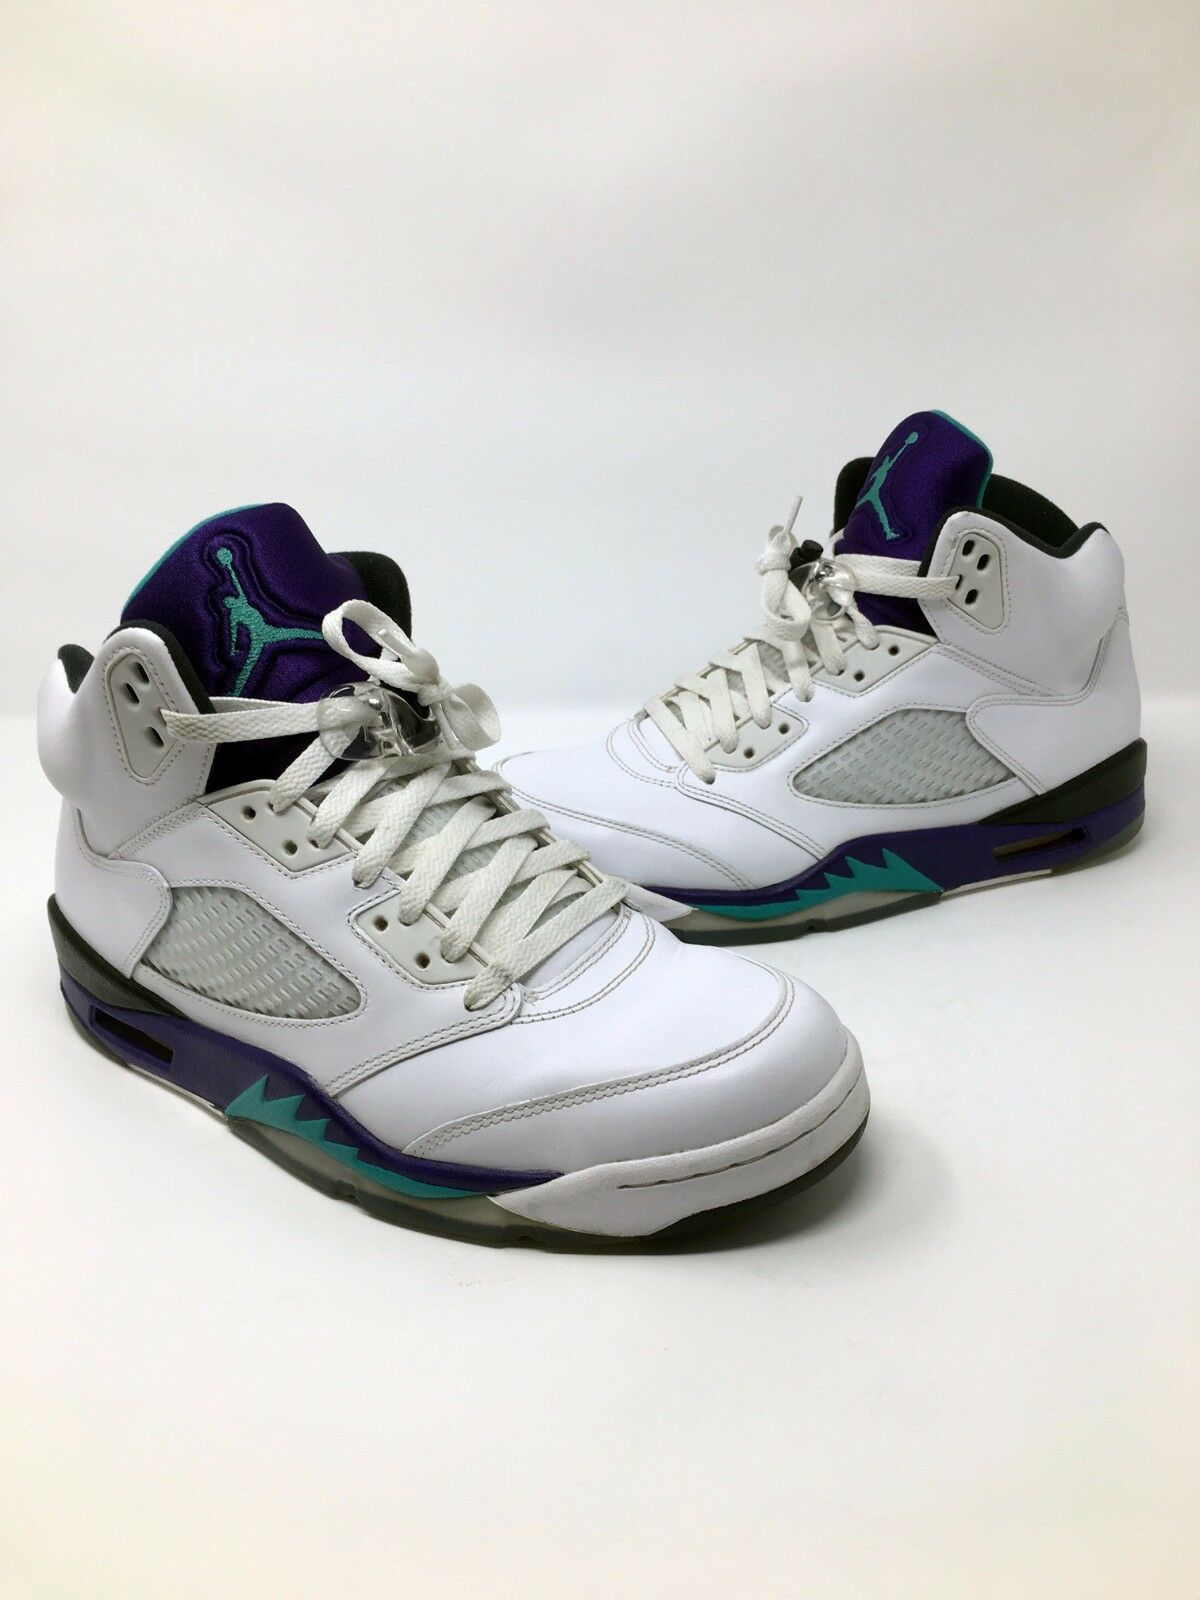 half off 2459b d2df0 ... closeout nike air uva jordan 5 retro v uva air púrpura 2018 136027 108  reduccion de